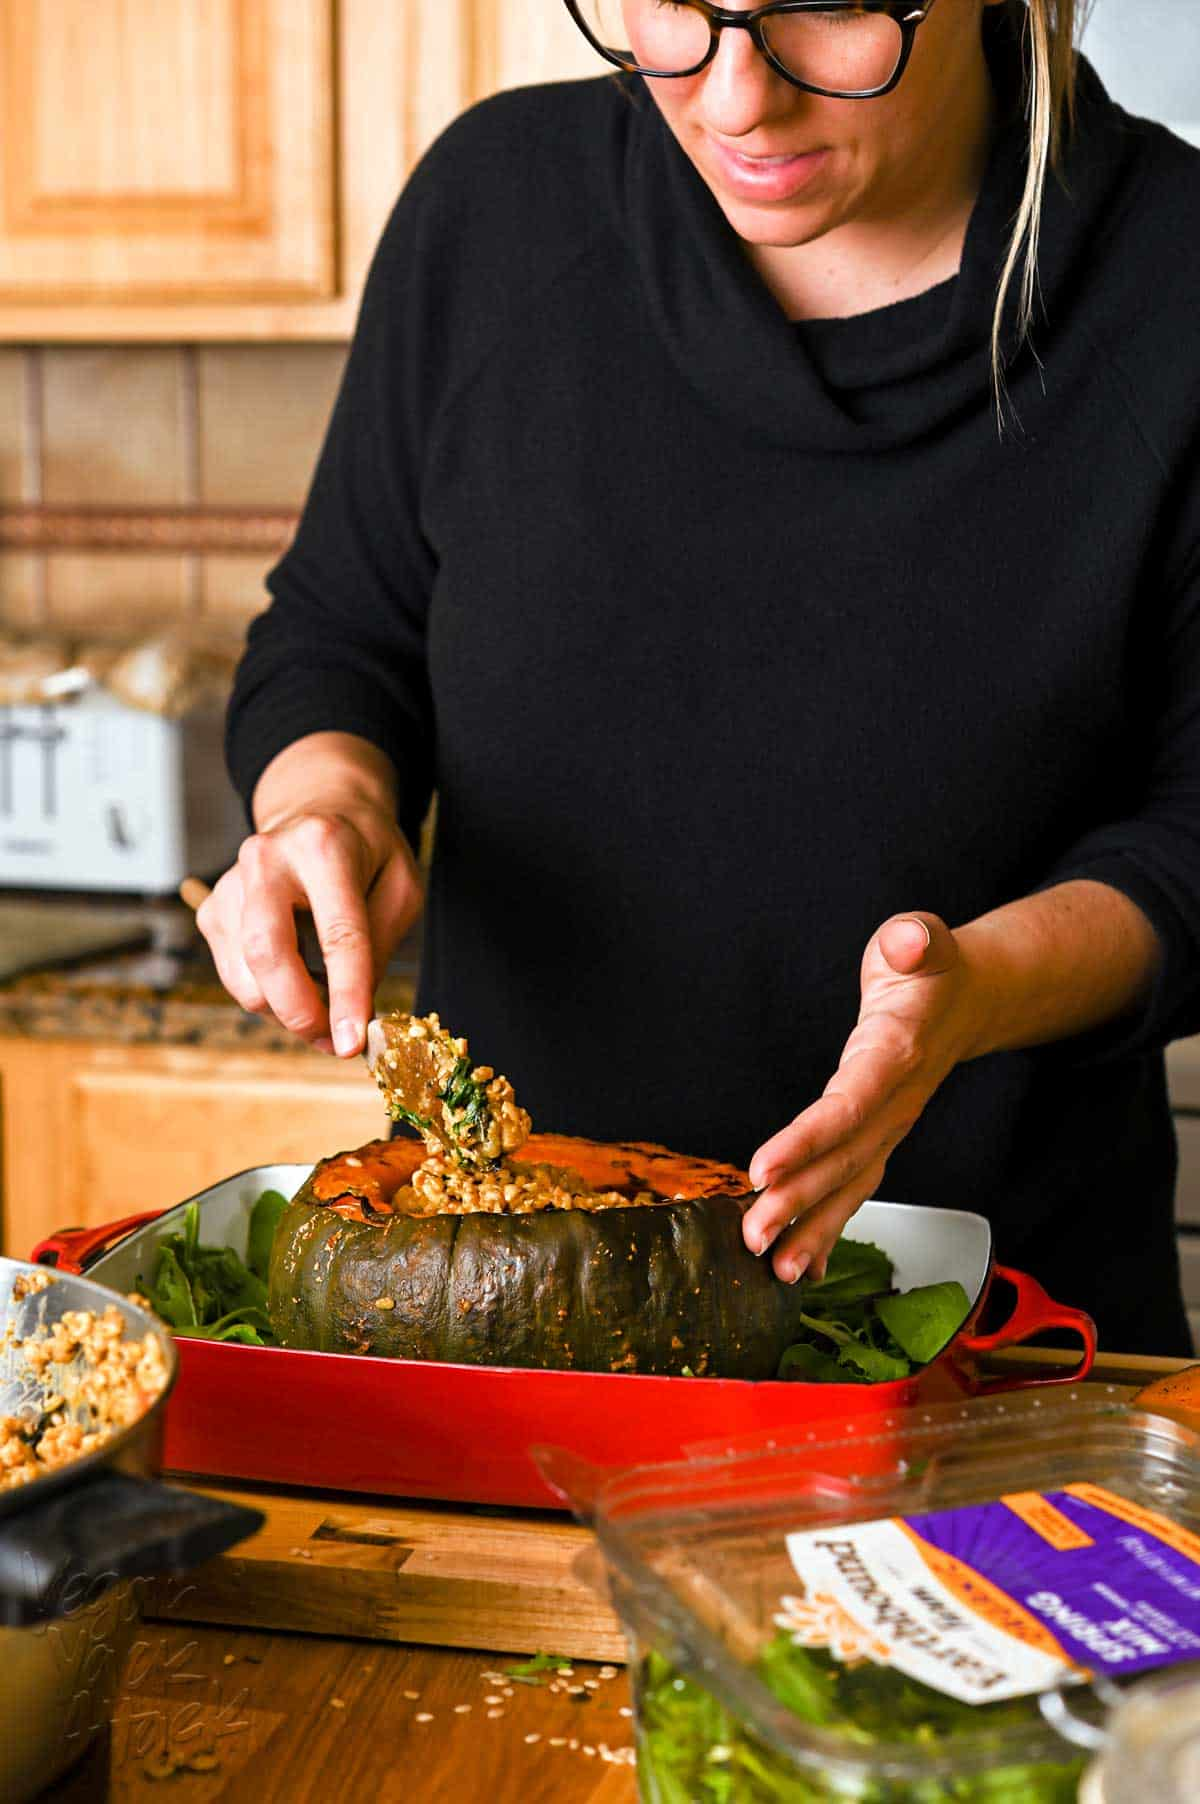 A woman in a black, long sleeve shirt, spooning rice stuffing into a large, roasted squash, that is in a red casserole dish.